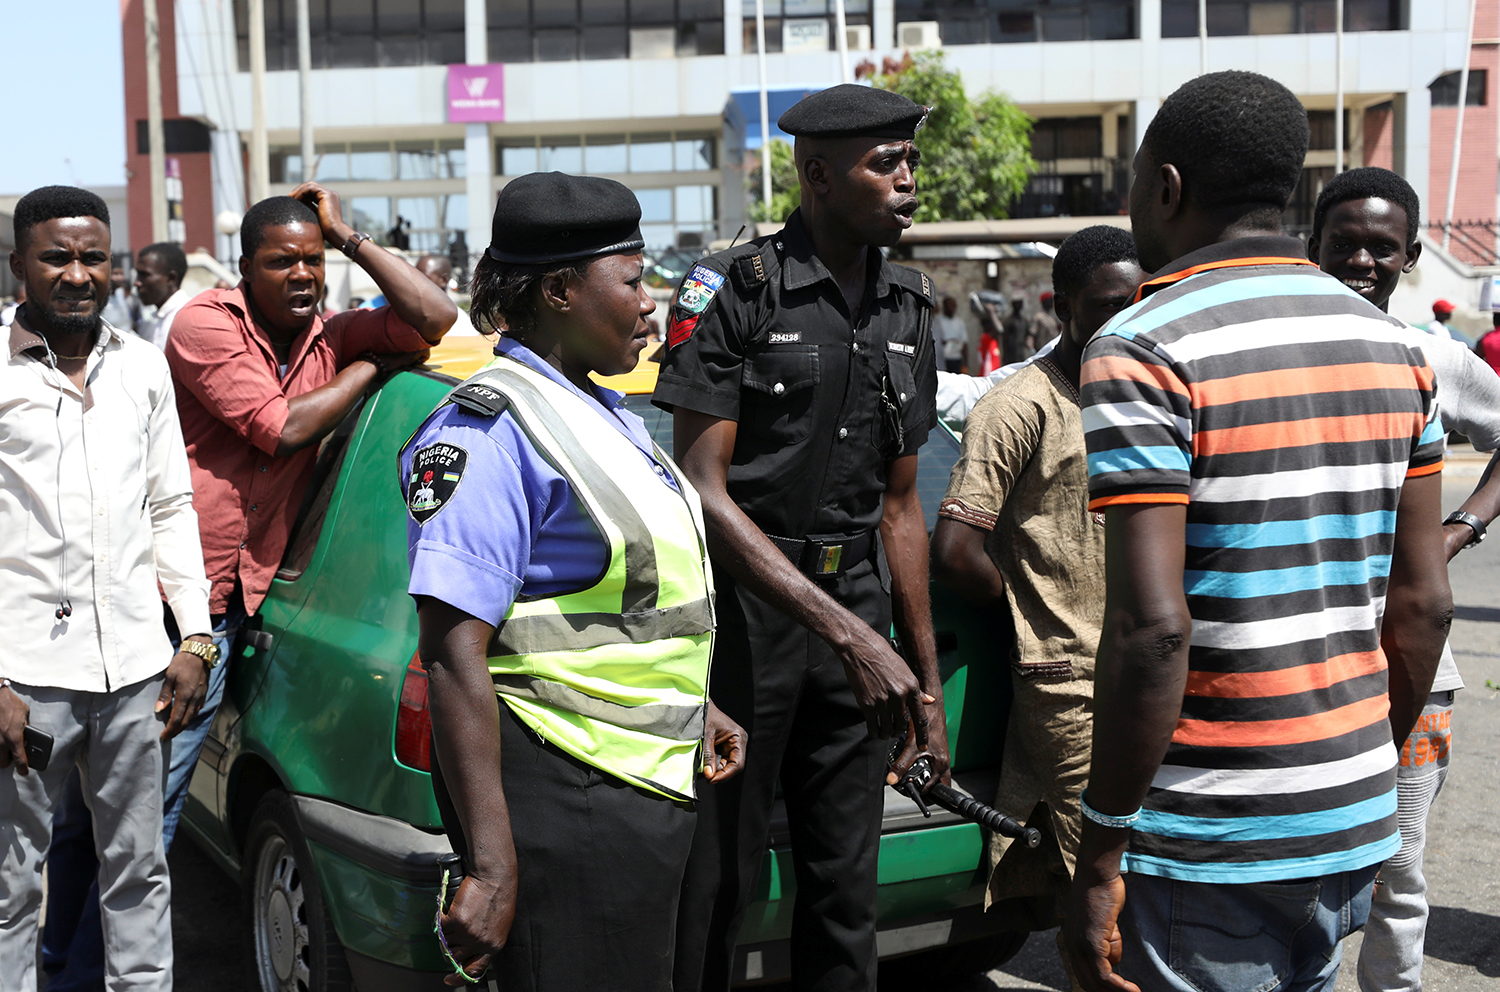 Taxi drivers protest against the Joint Task force in Abuja, Nigeria